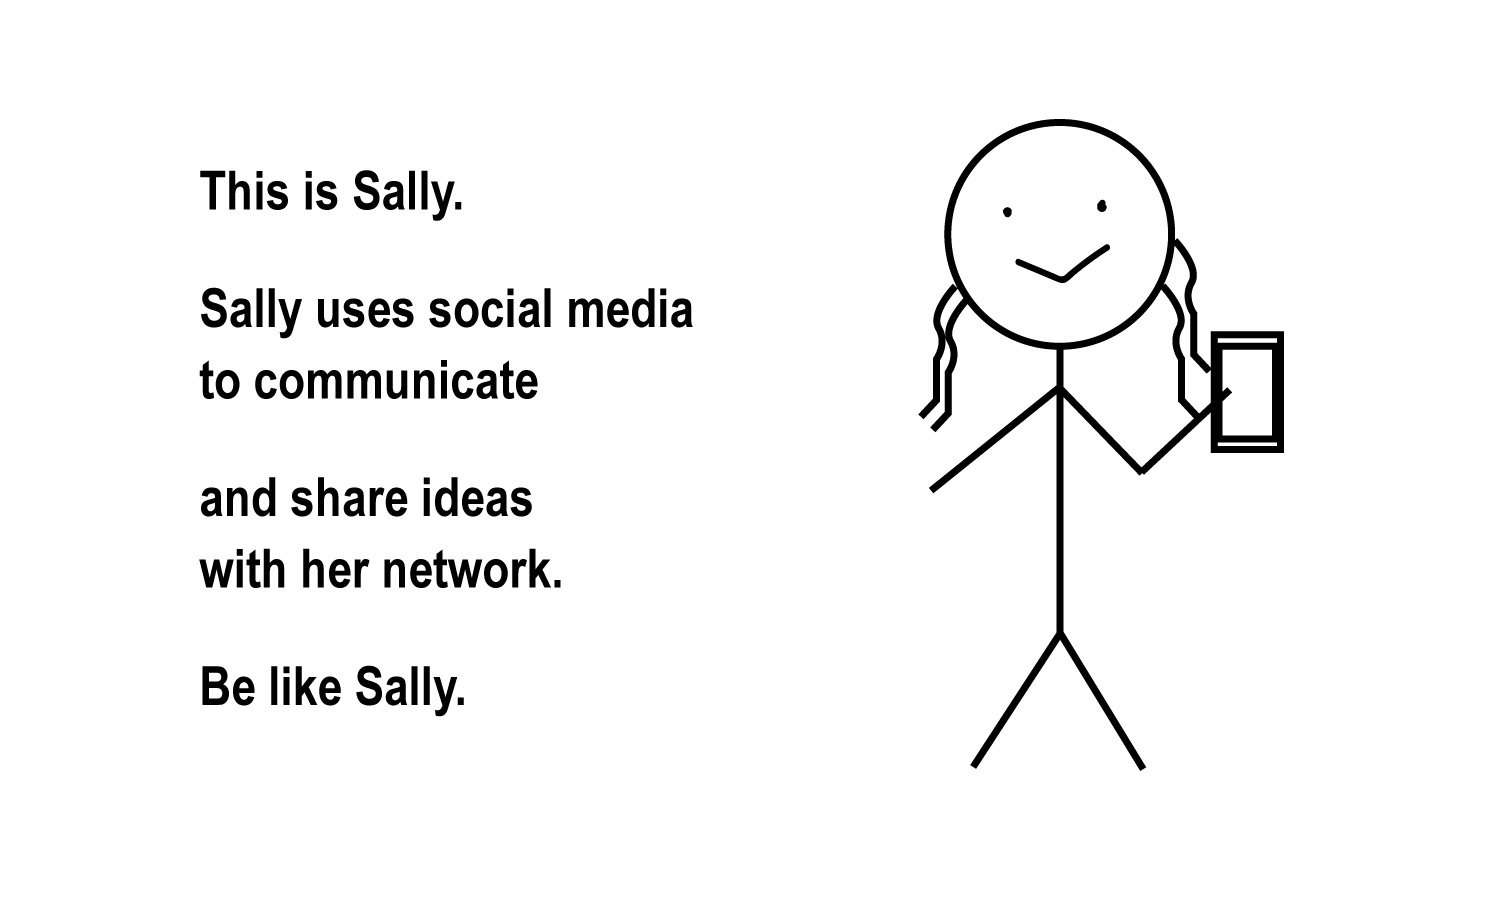 Work-based social media_This is Sally